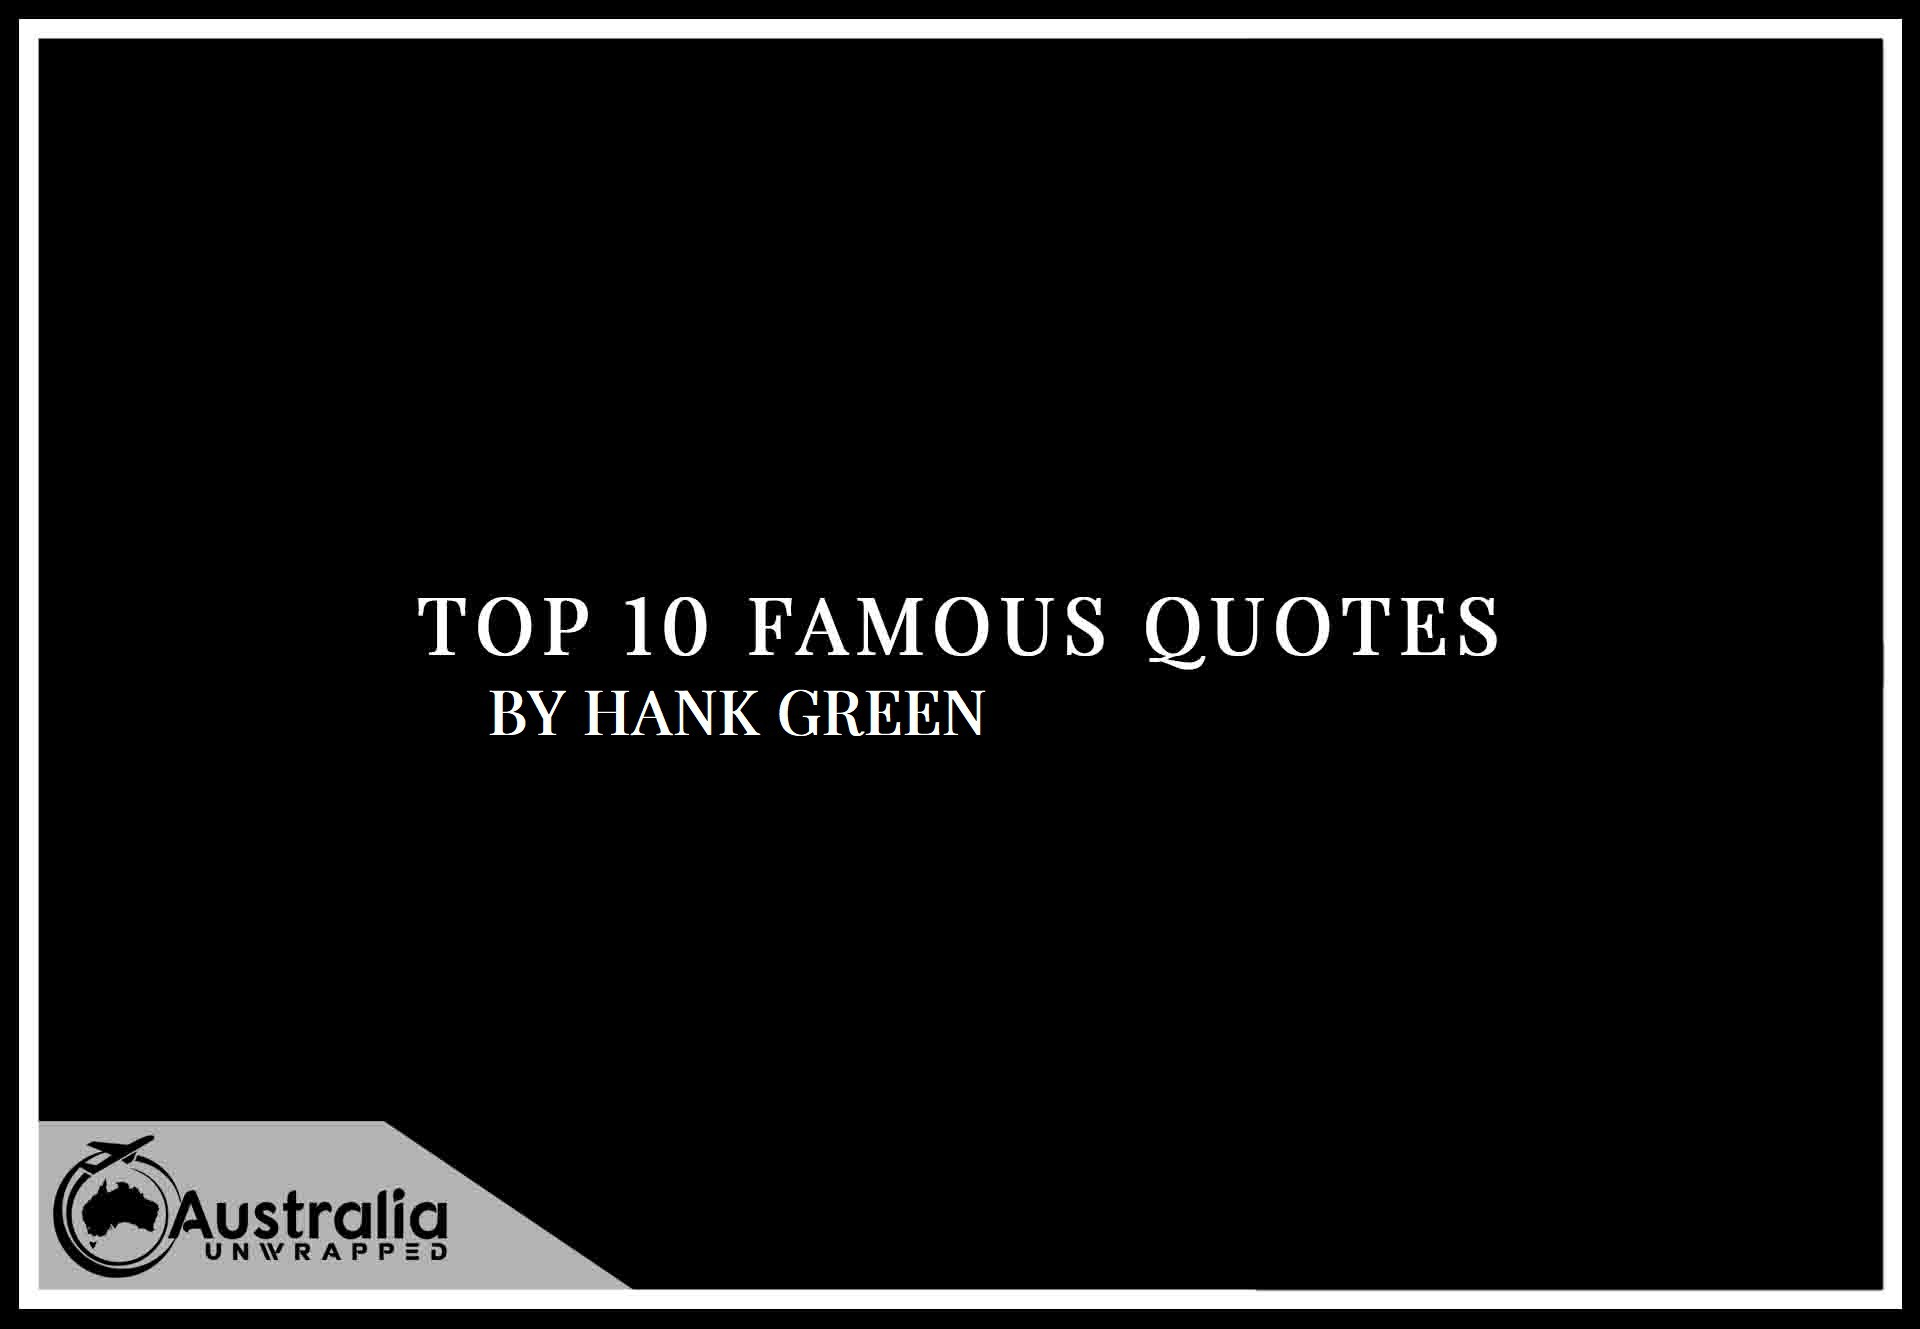 Top 10 Famous Quotes by Author Hank Green